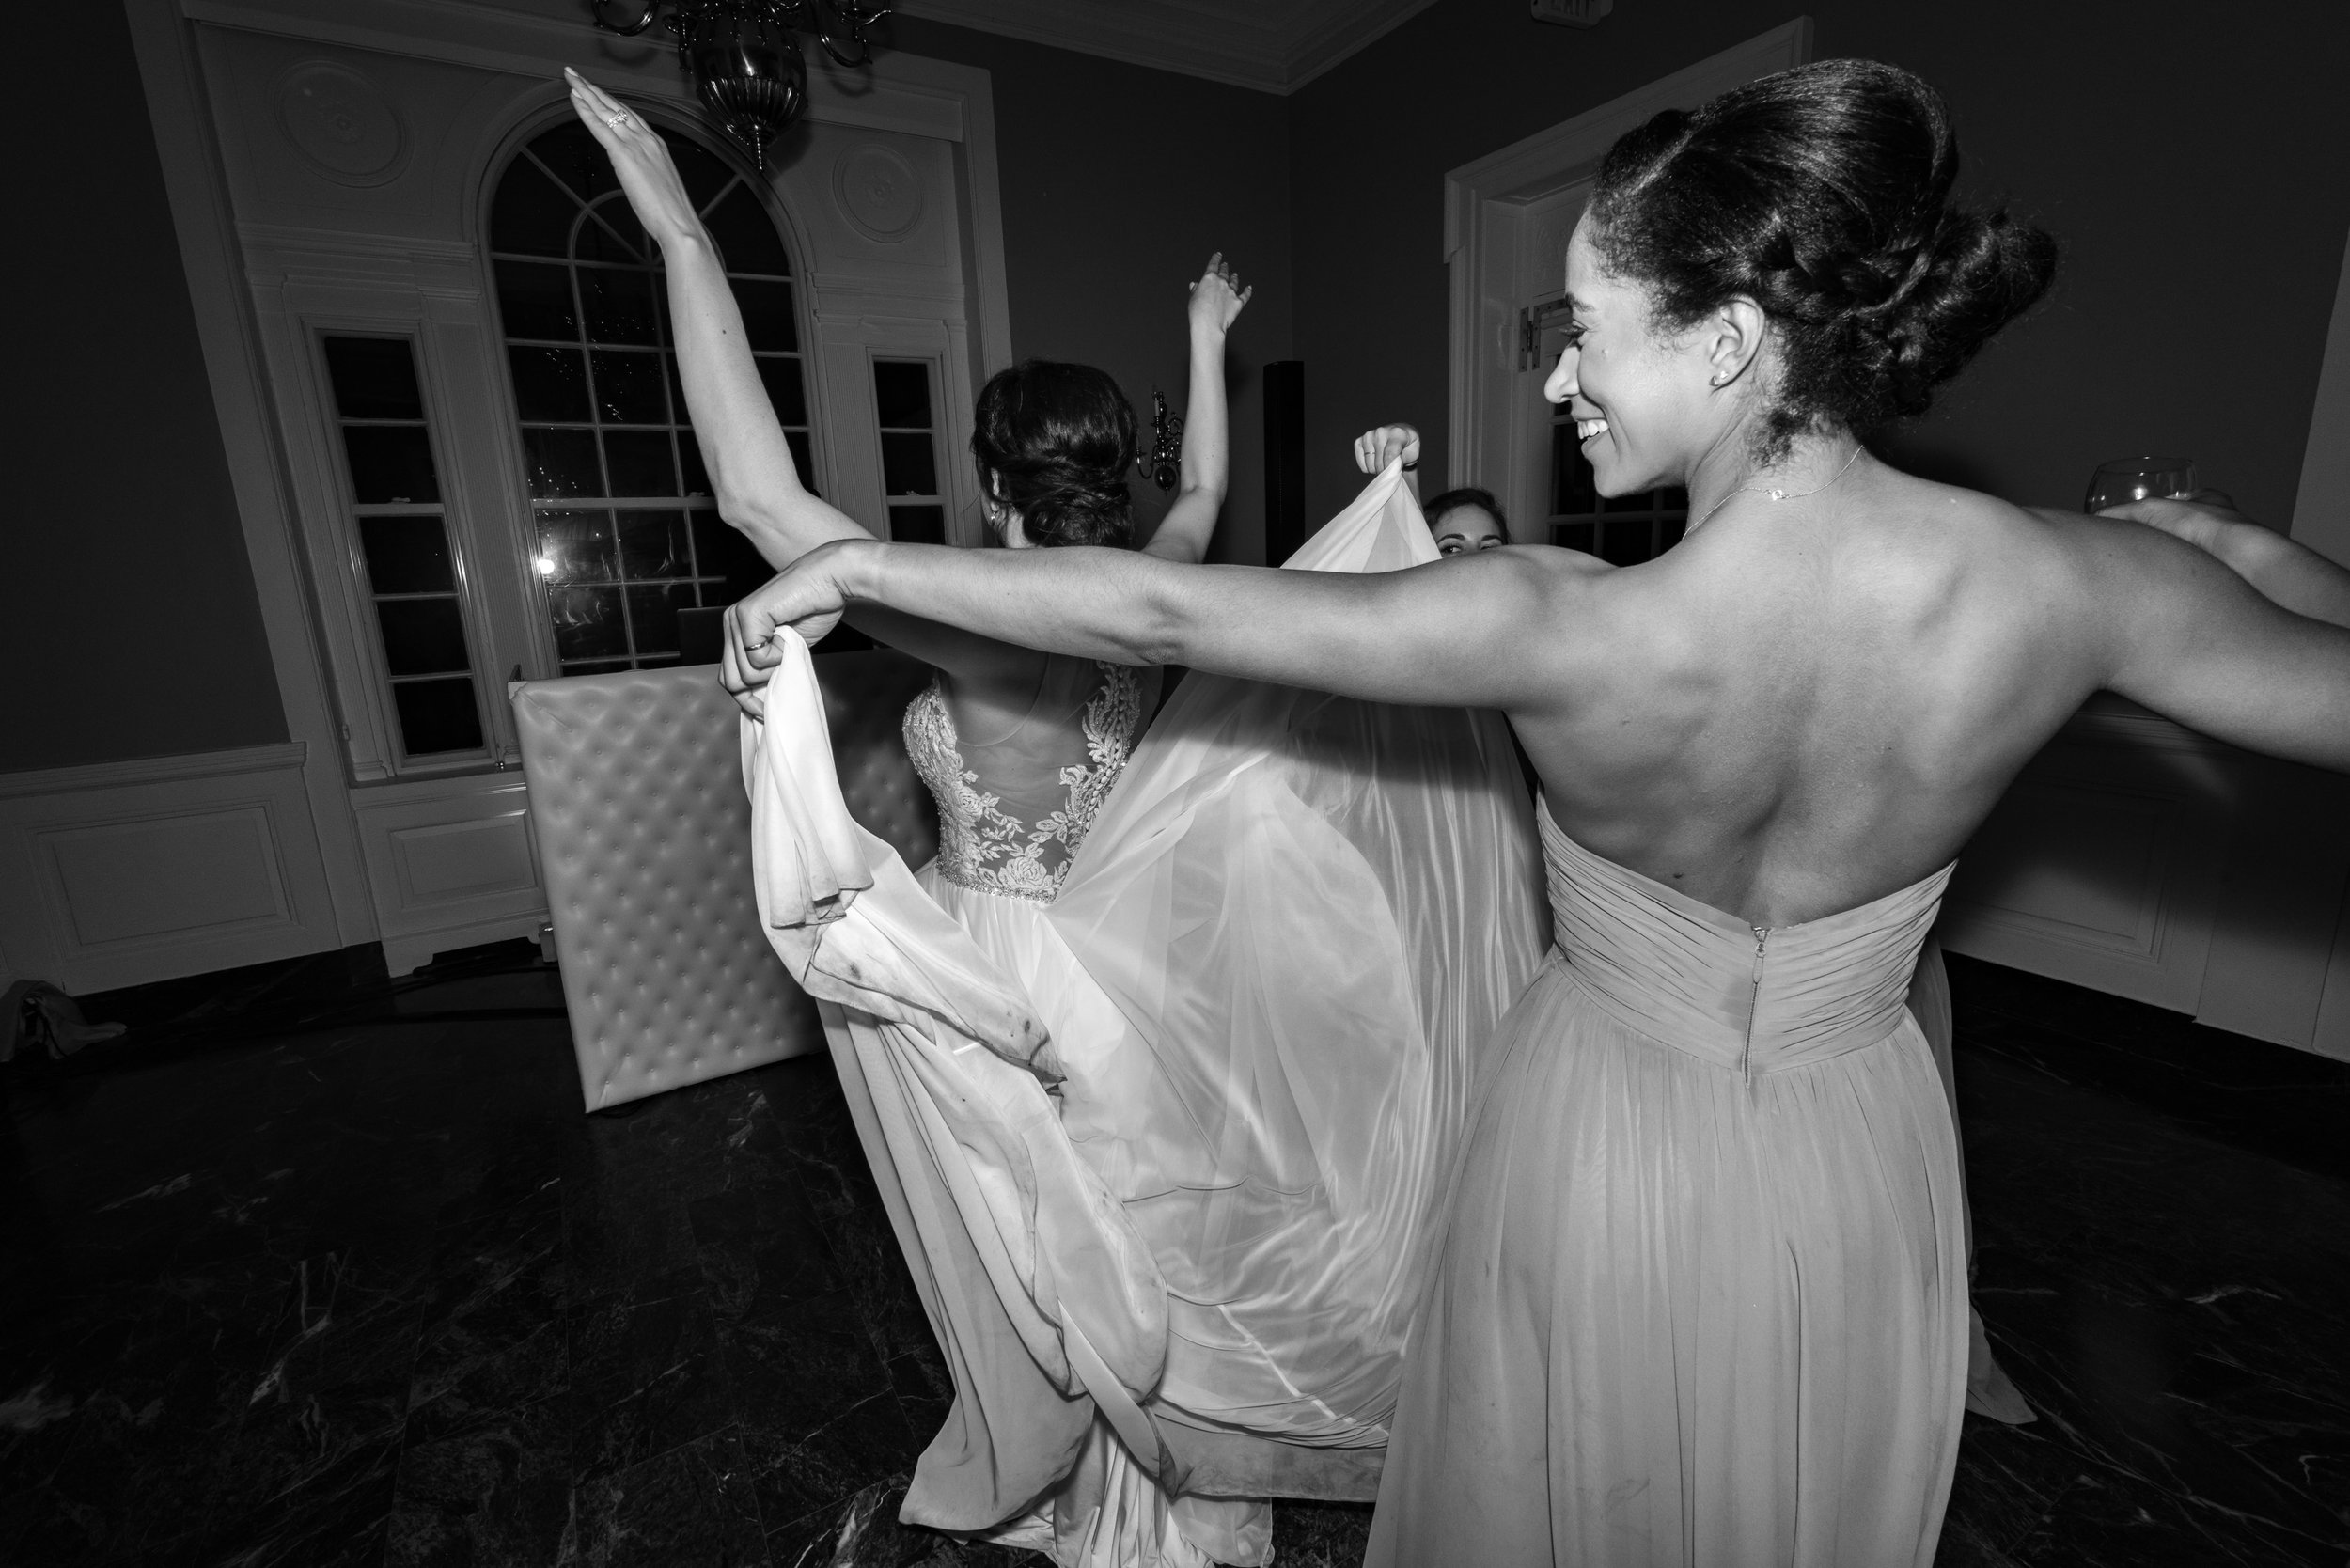 Bride and bridesmaids partying during wedding reception at Rockville wedding venue Glenview Mansion